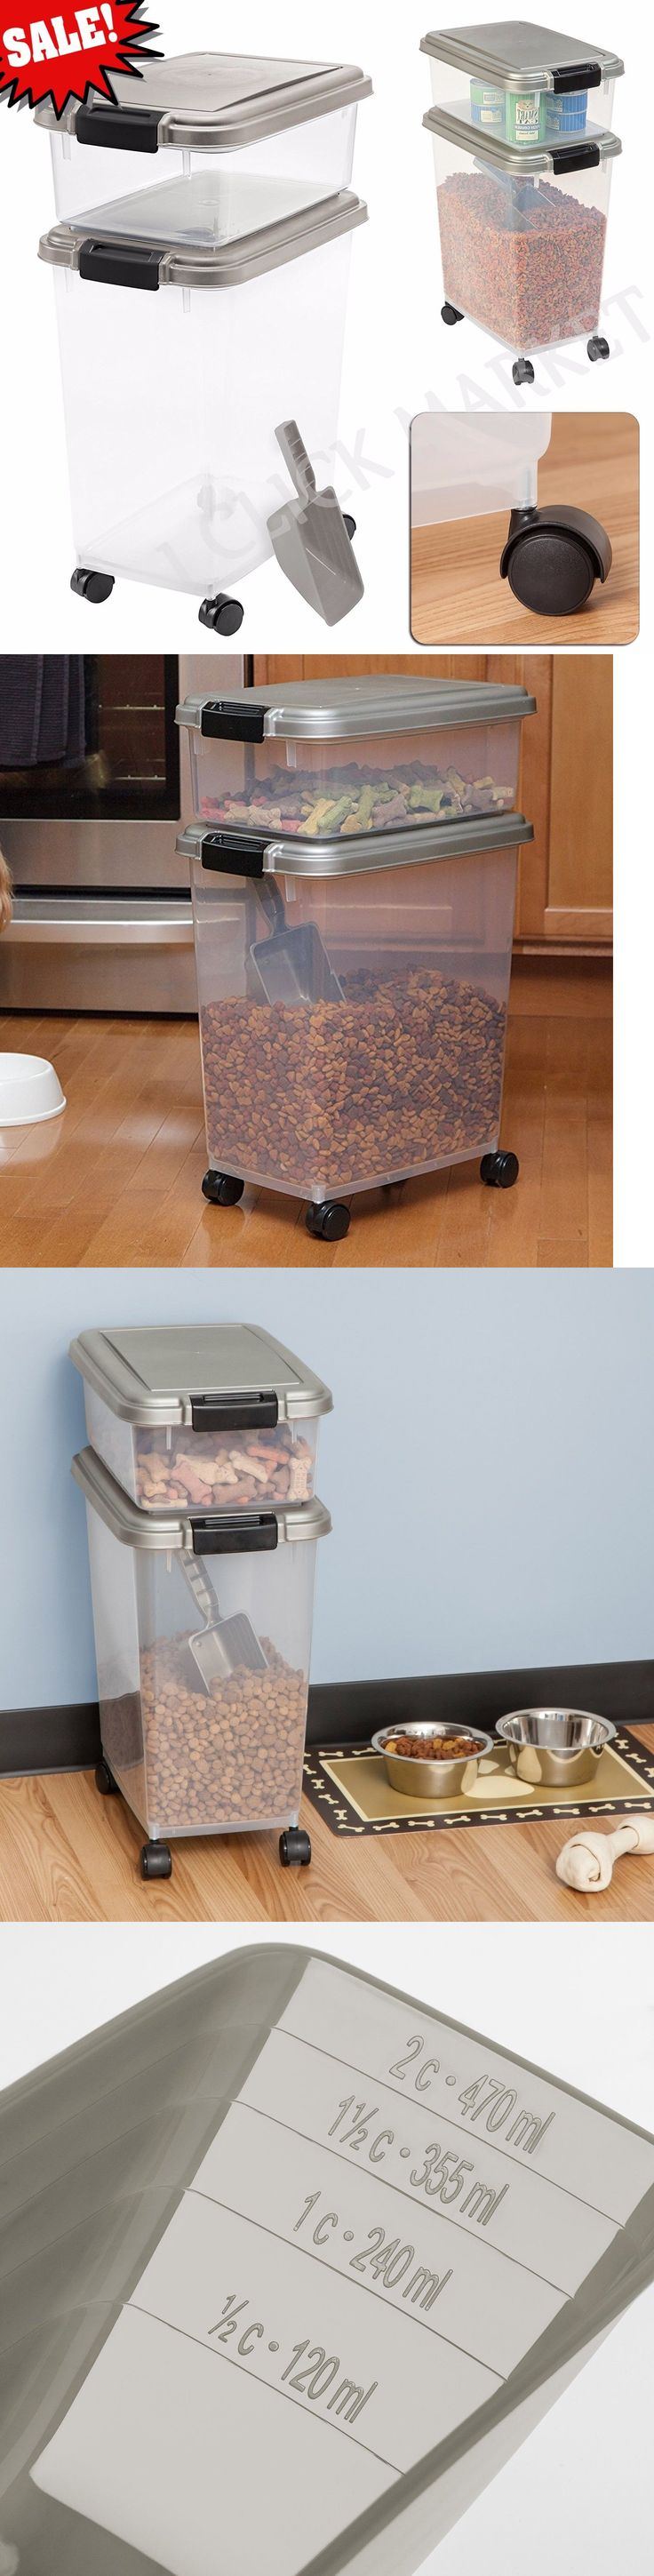 Dishes Feeders and Fountains 177789: Dog Food Container Cat Pet Feeder Storage Airtight Bin Rolling Wheels Box Combo -> BUY IT NOW ONLY: $33.51 on eBay!